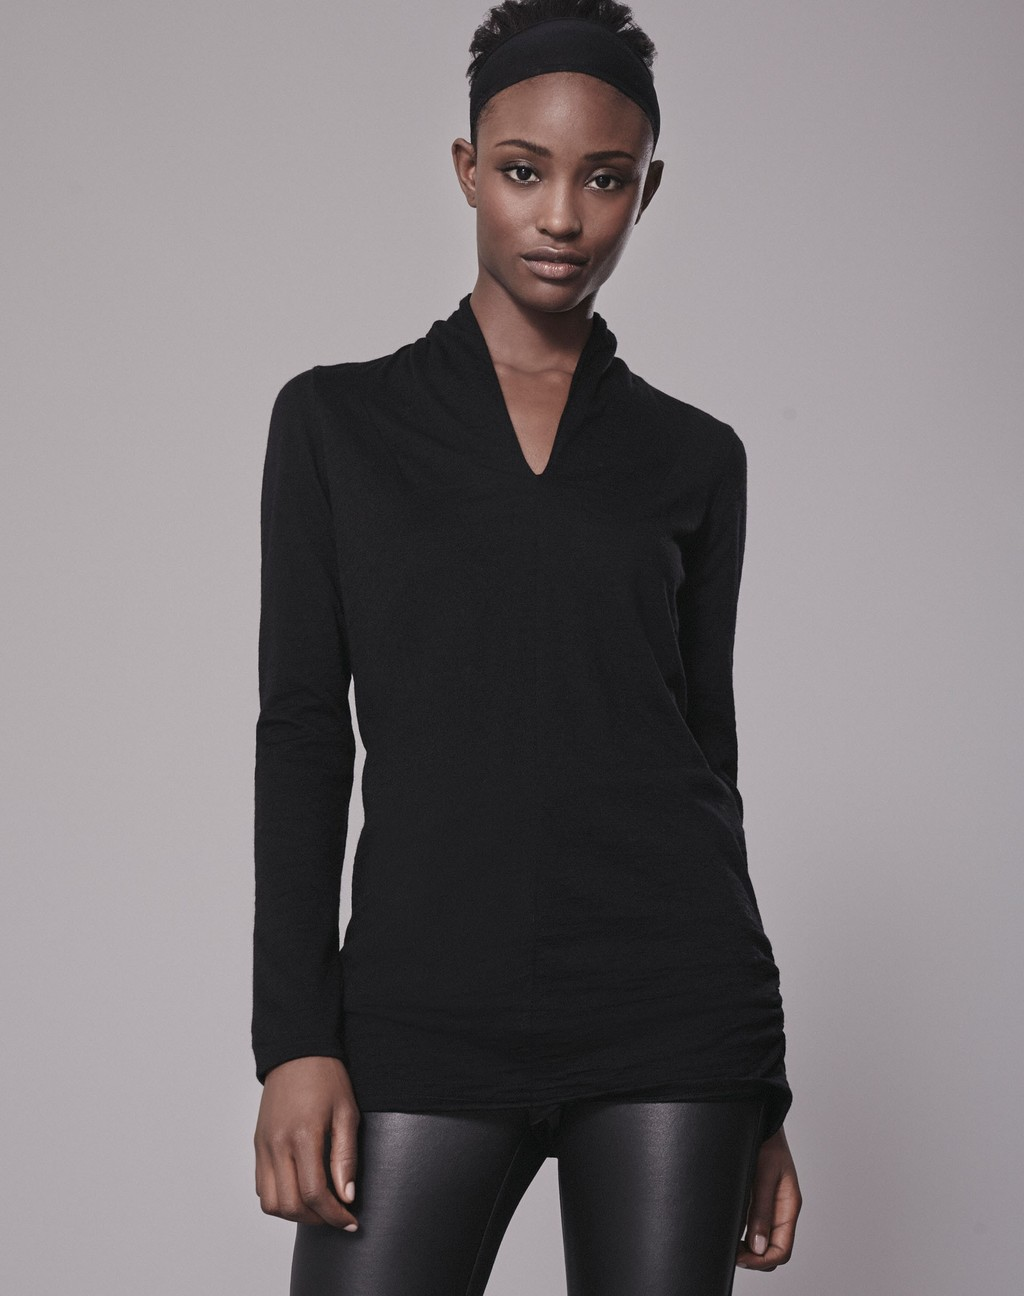 Luxe Slim V Top Black - neckline: v-neck; pattern: plain; predominant colour: black; occasions: casual, evening; length: standard; style: top; fibres: wool - 100%; fit: body skimming; sleeve length: long sleeve; sleeve style: standard; pattern type: fabric; texture group: jersey - stretchy/drapey; wardrobe: basic; season: a/w 2016